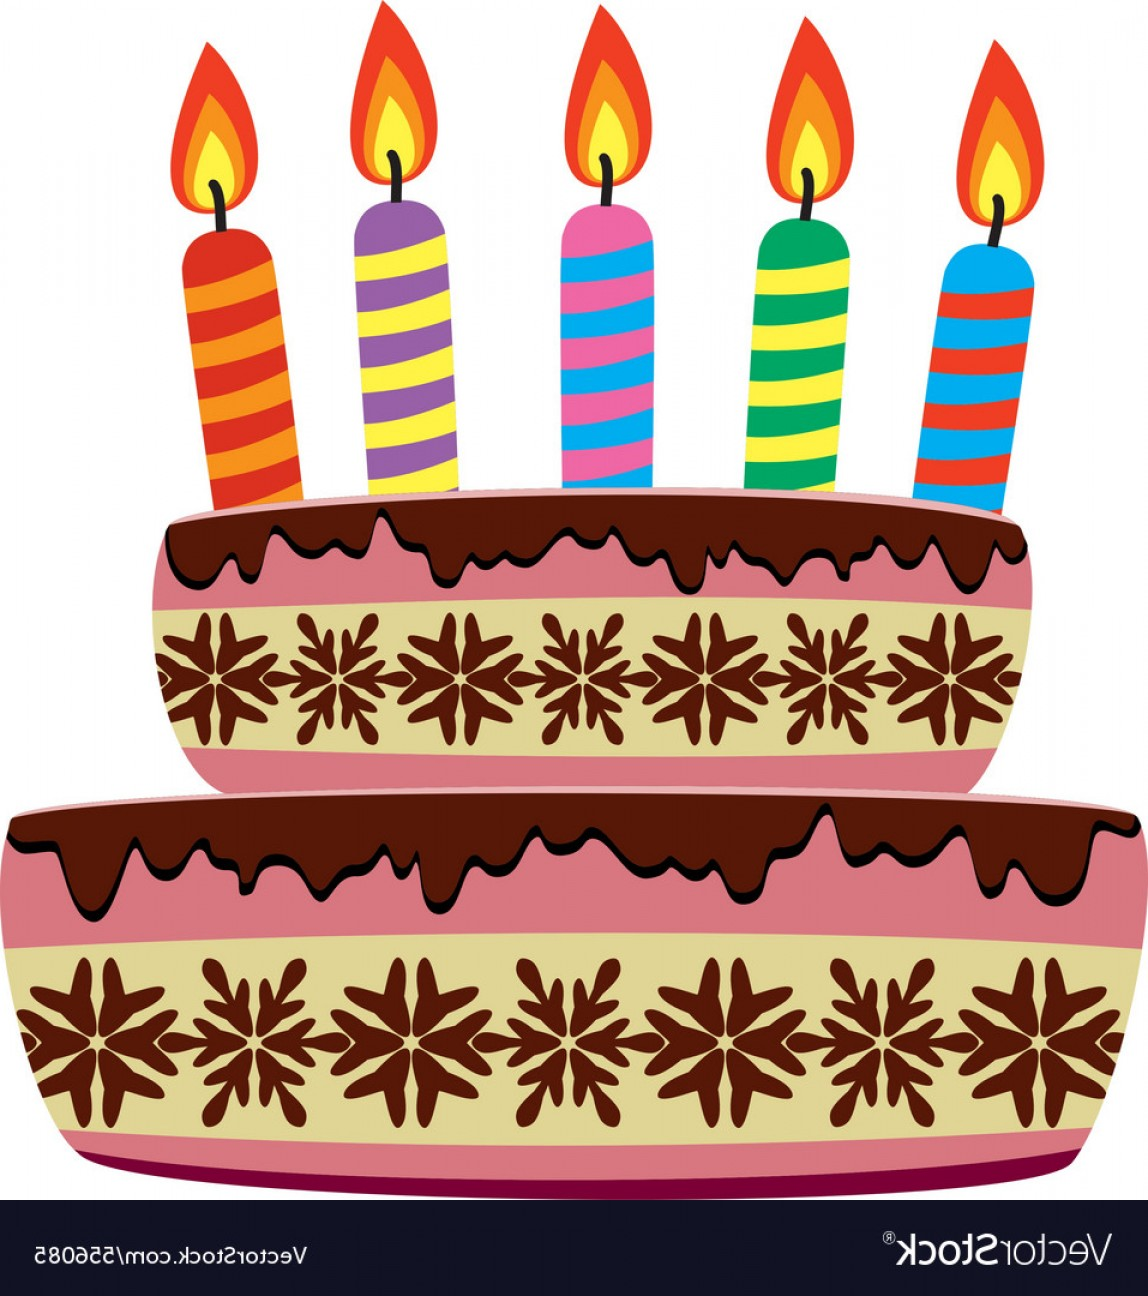 Birthday Candle Vector Art: Birthday Cake With Burning Candles Vector